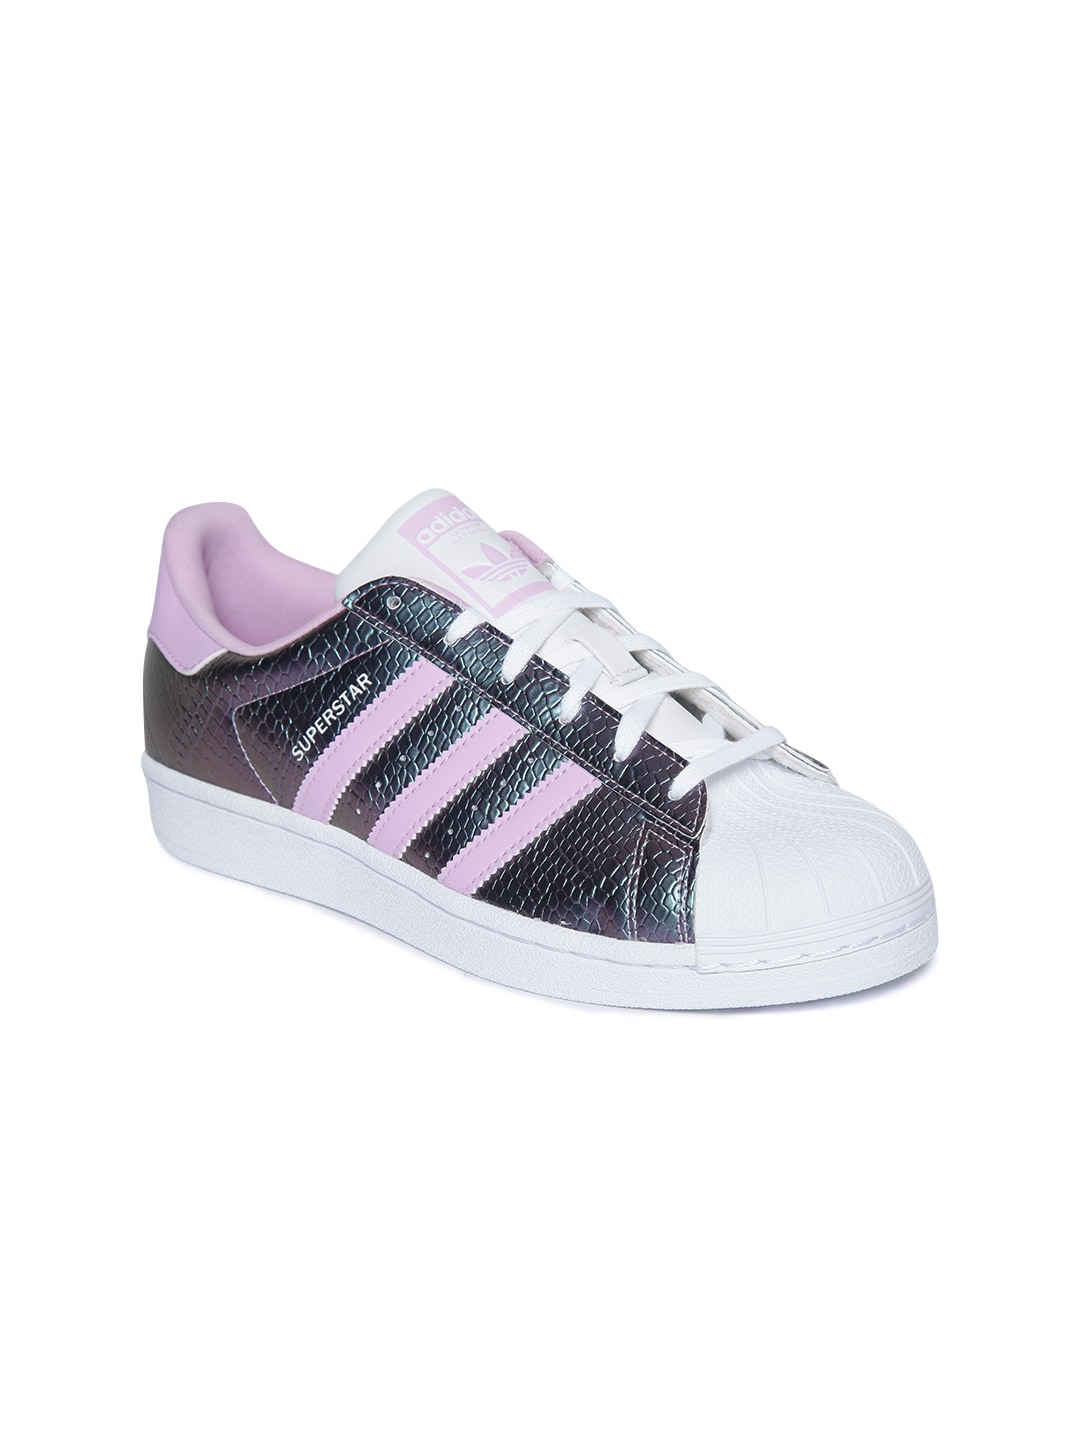 Adidas Superstar - Buy Adidas Superstar online in India 104e5d272